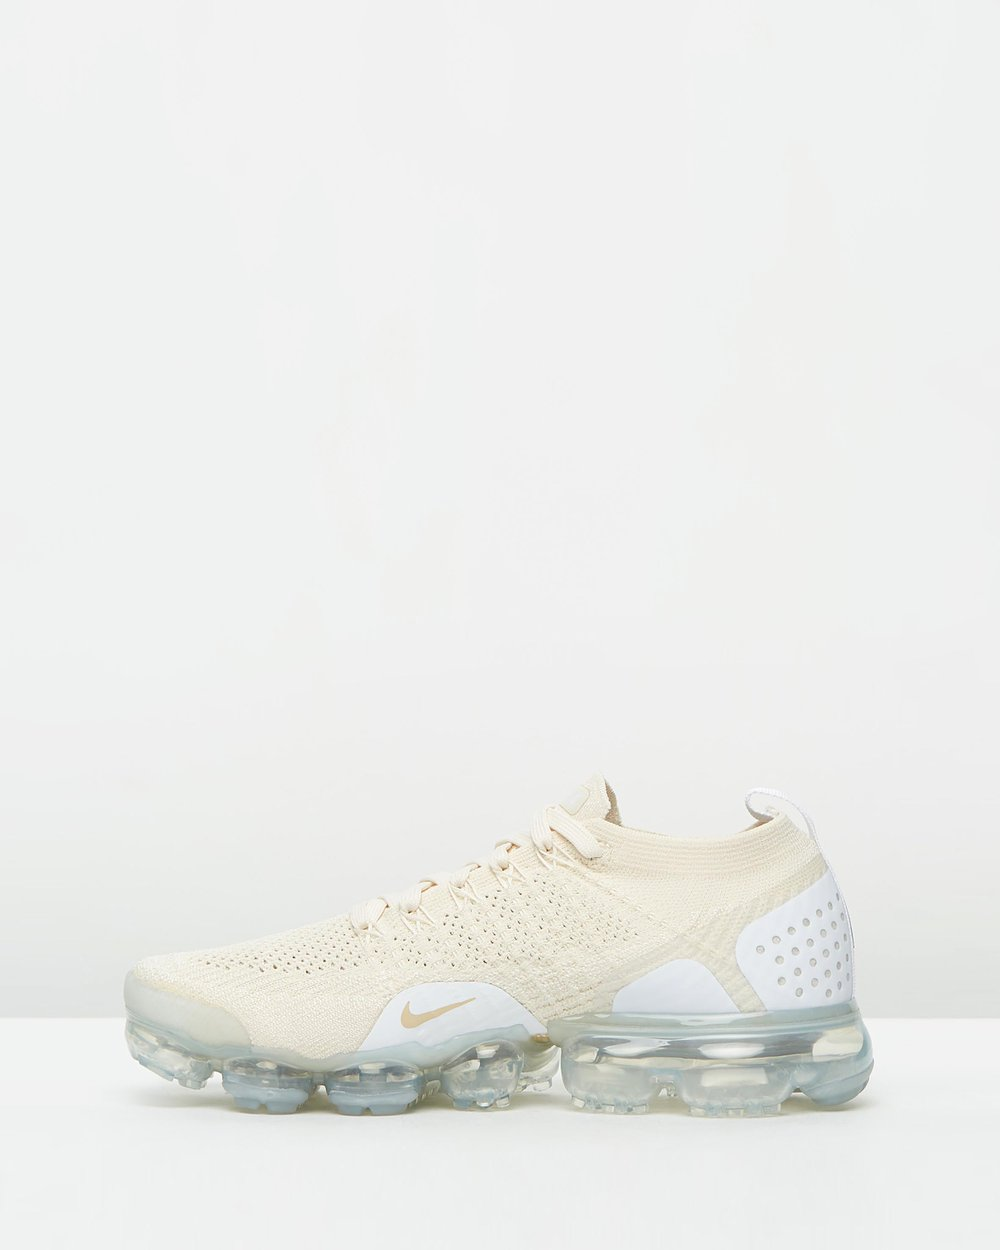 Nike Air Vapormax Flyknit 2 Womens By Online The Iconic All White Premium Australia